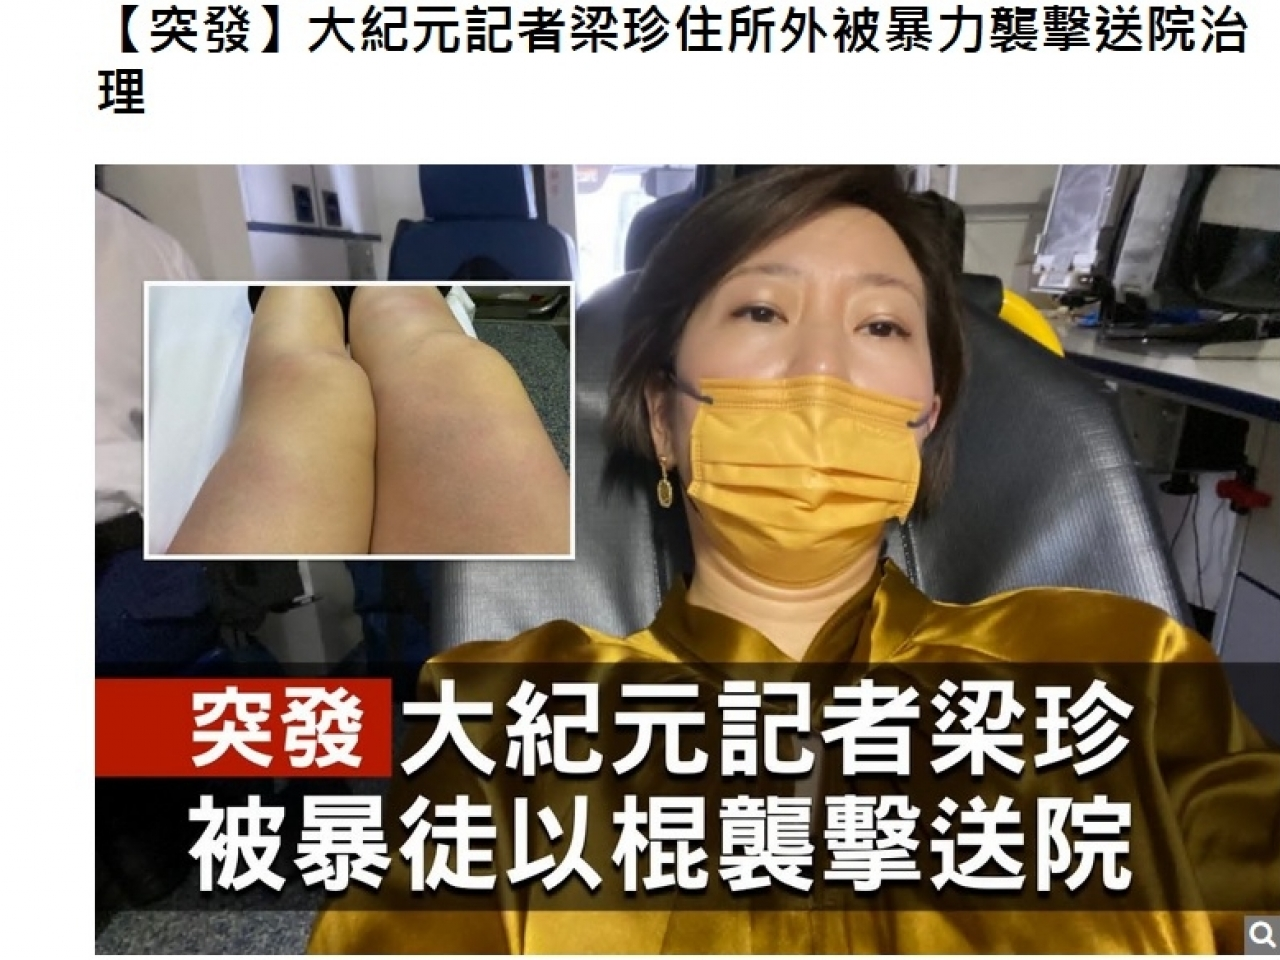 Epoch Times ran a breaking story on its website detailing the attack on its reporter.